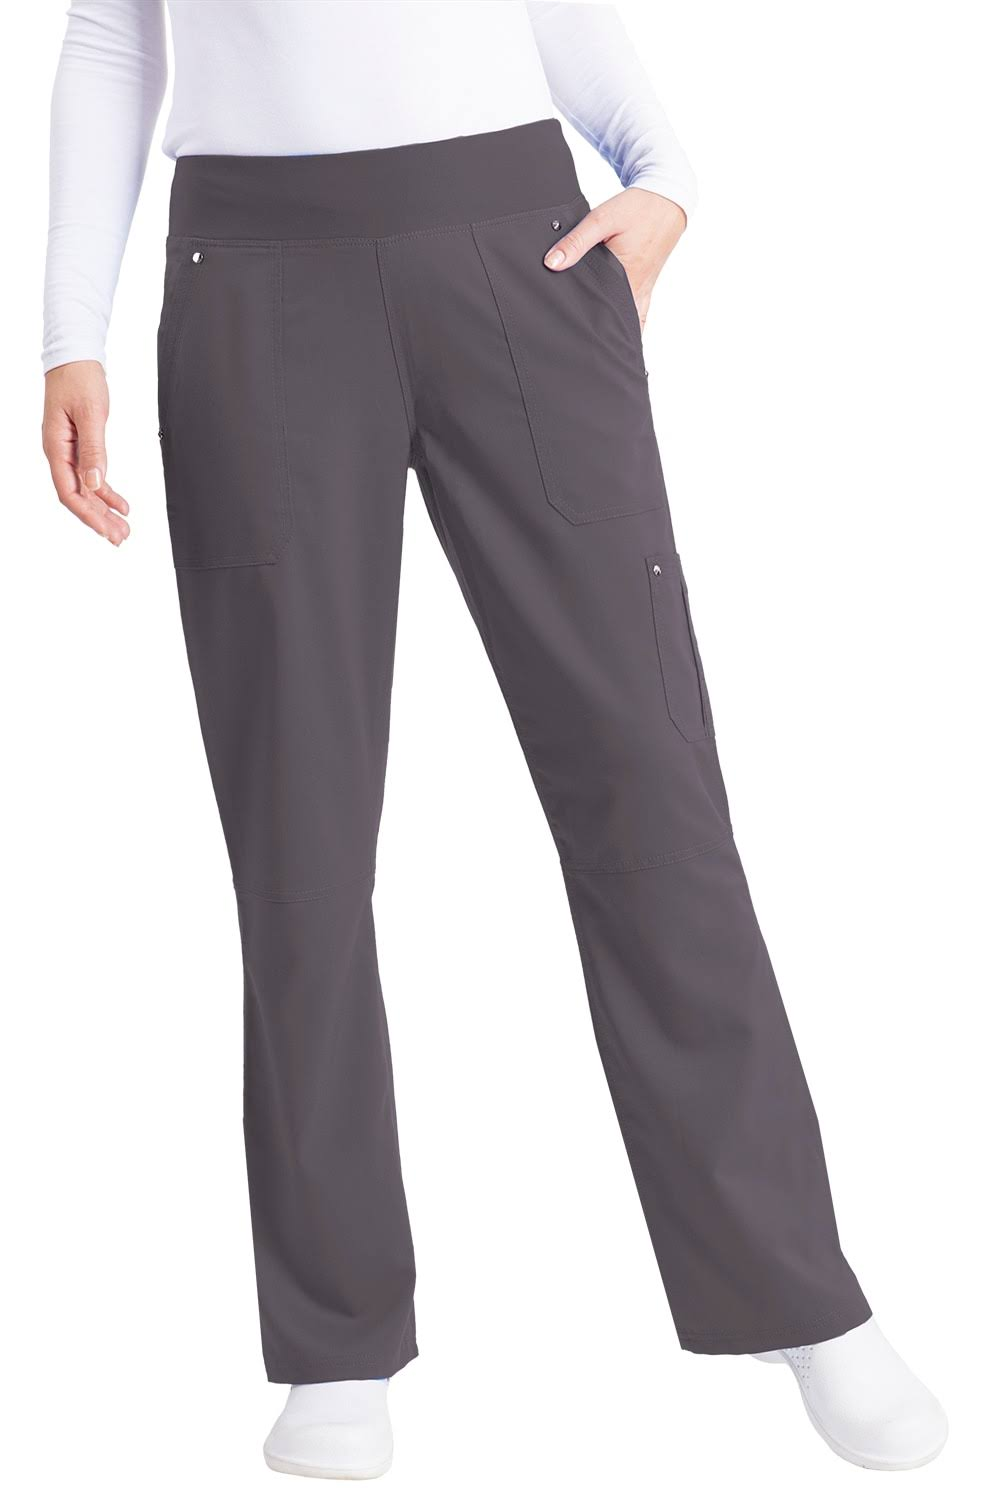 Healing Hands Tori Pant Scrub Bottoms - Pewter, X-Small Petite